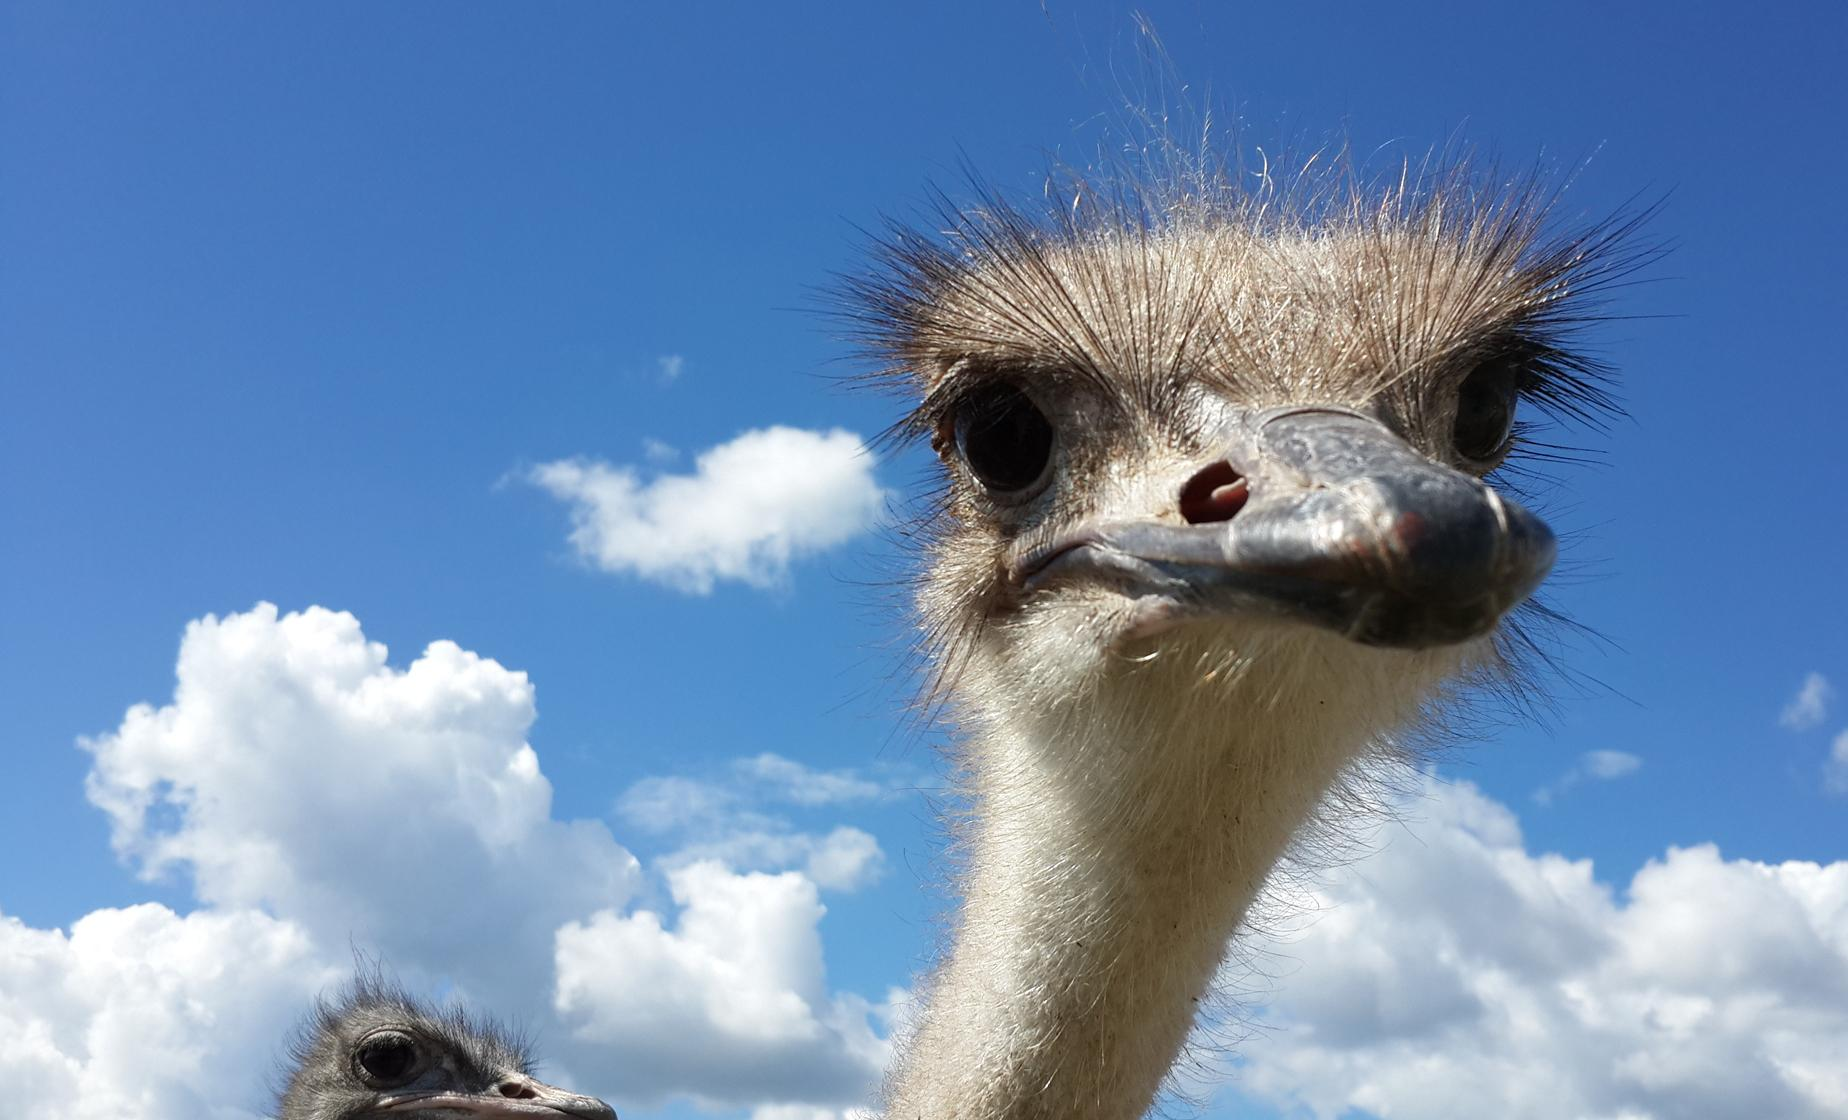 HATO Caves & Jeep Safari Ostrich Farm in Curacao